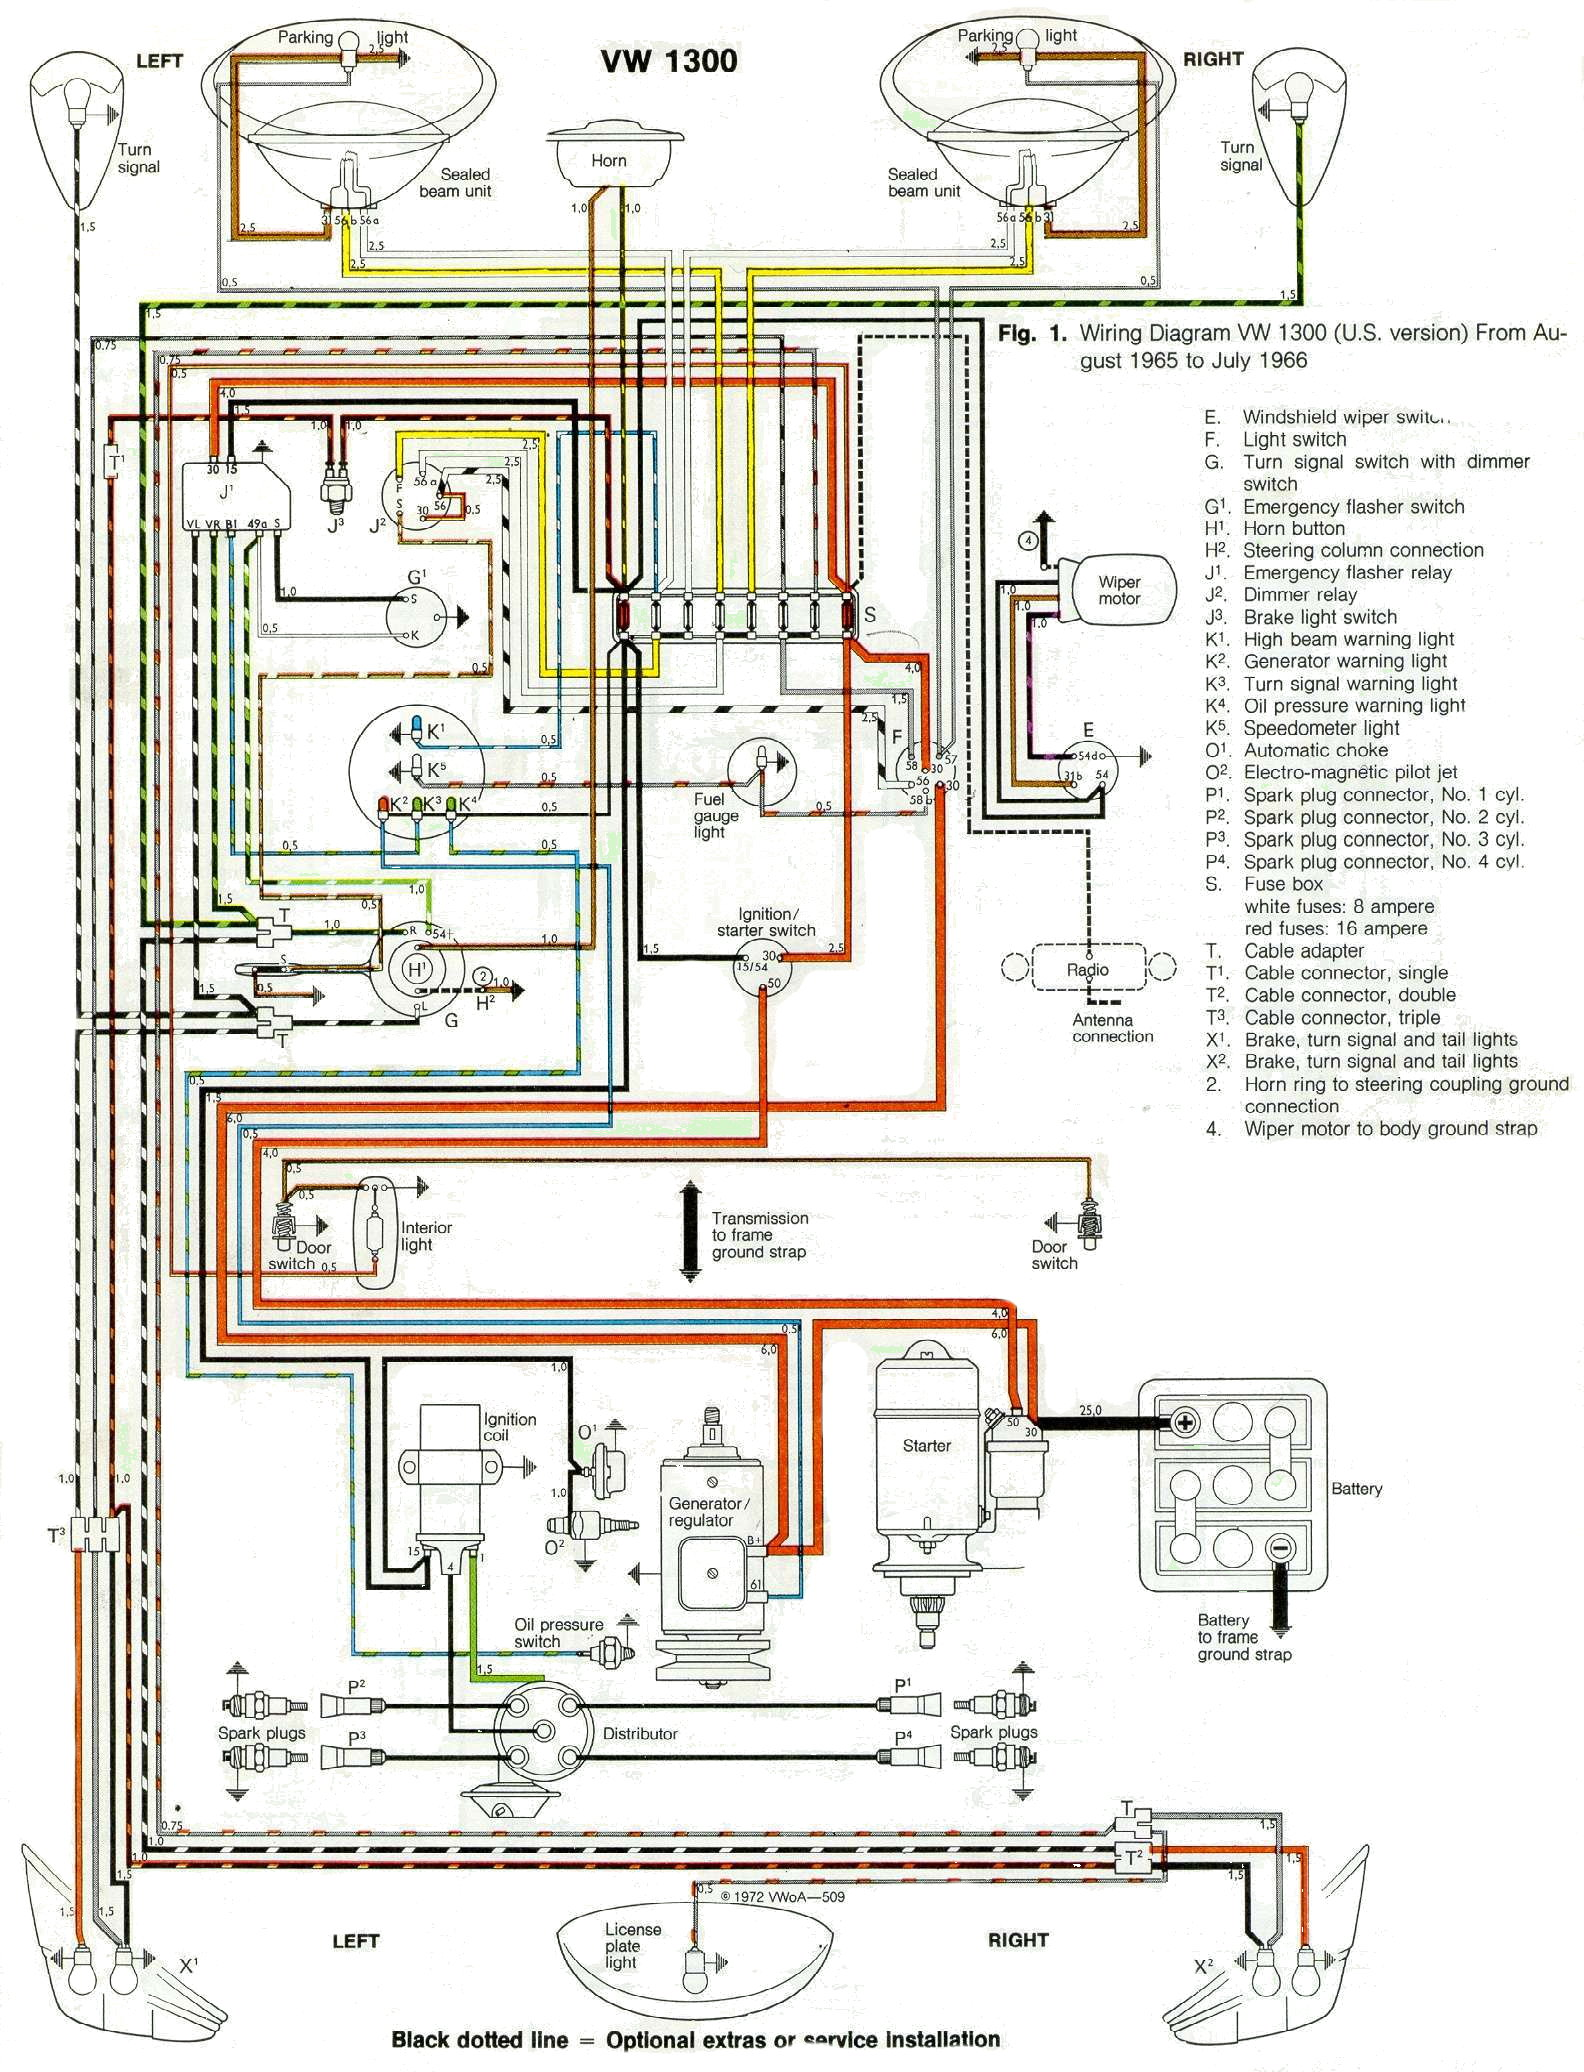 1966 Wiring 1966 wiring diagram 1965 vw beetle wiring diagram at nearapp.co